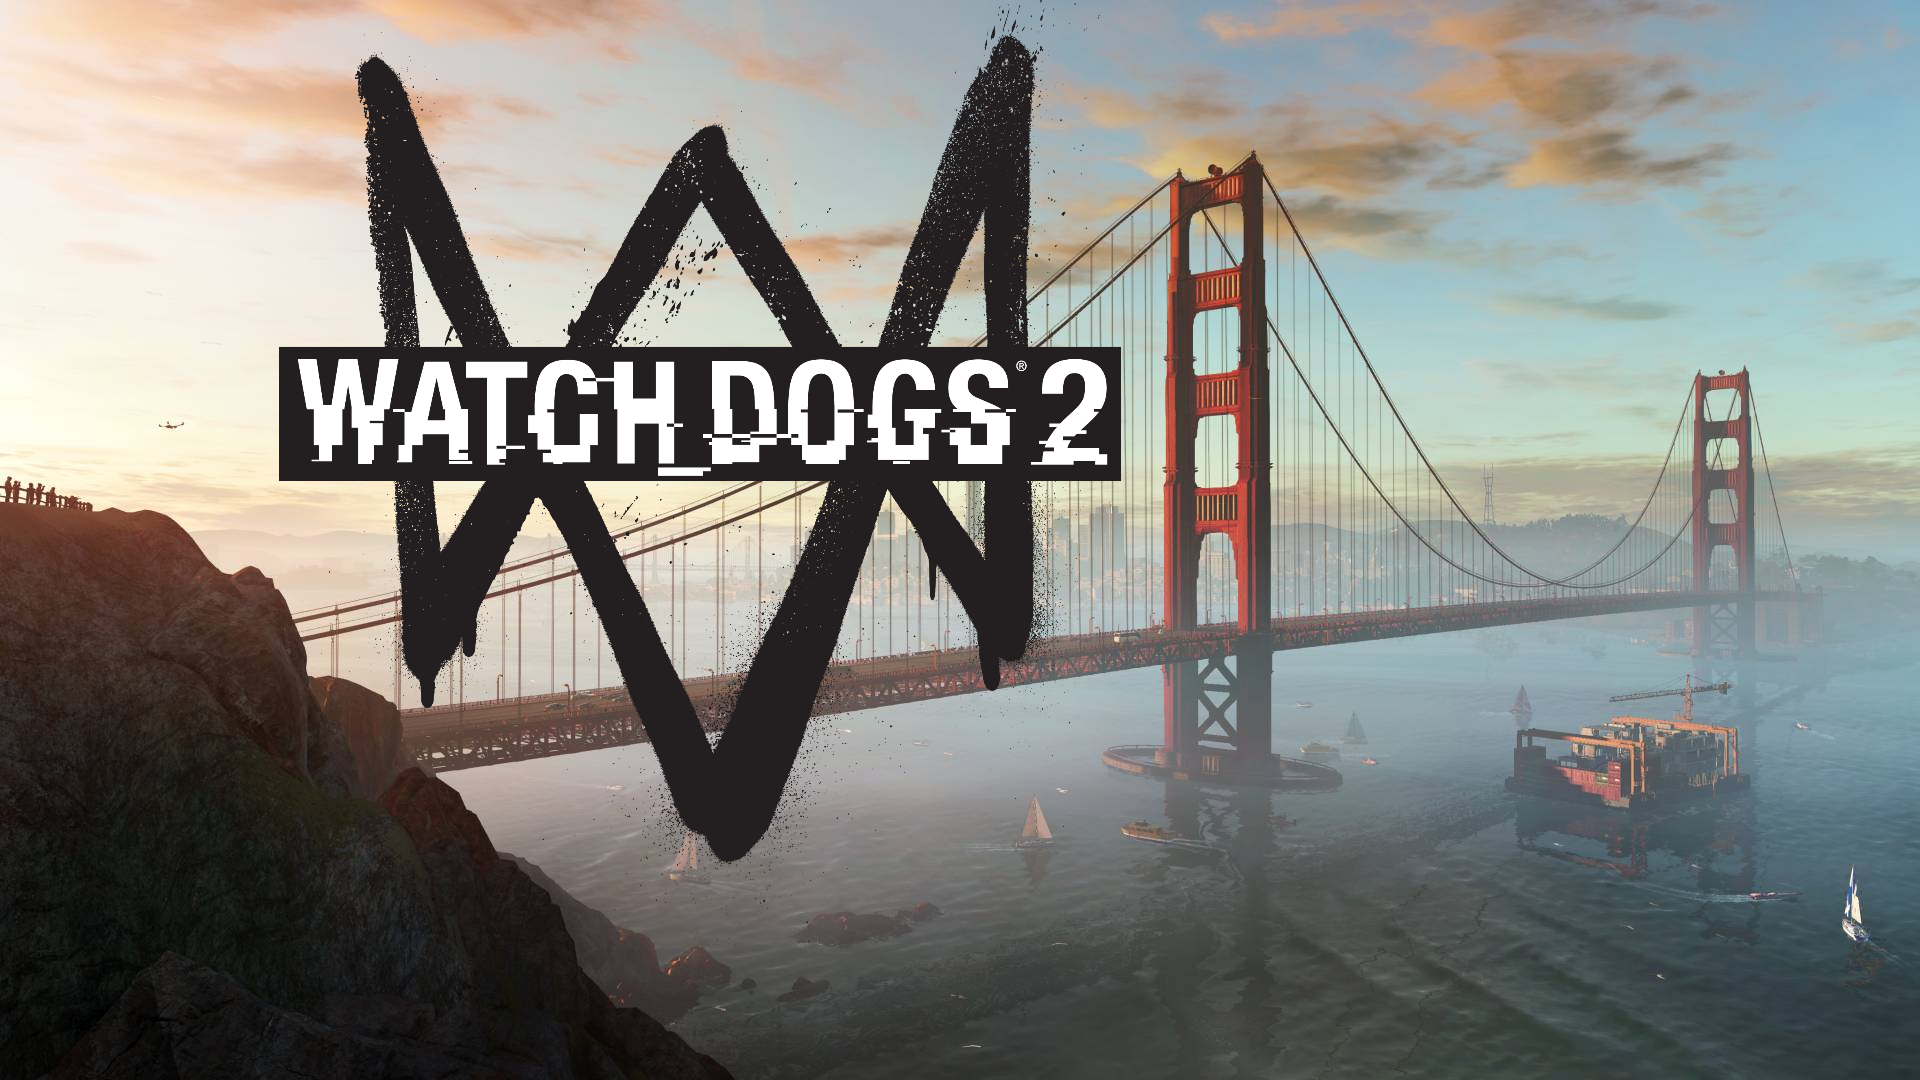 Watch Dogs 2 Free Download PC Game Cracked In Direct Link And Torrent